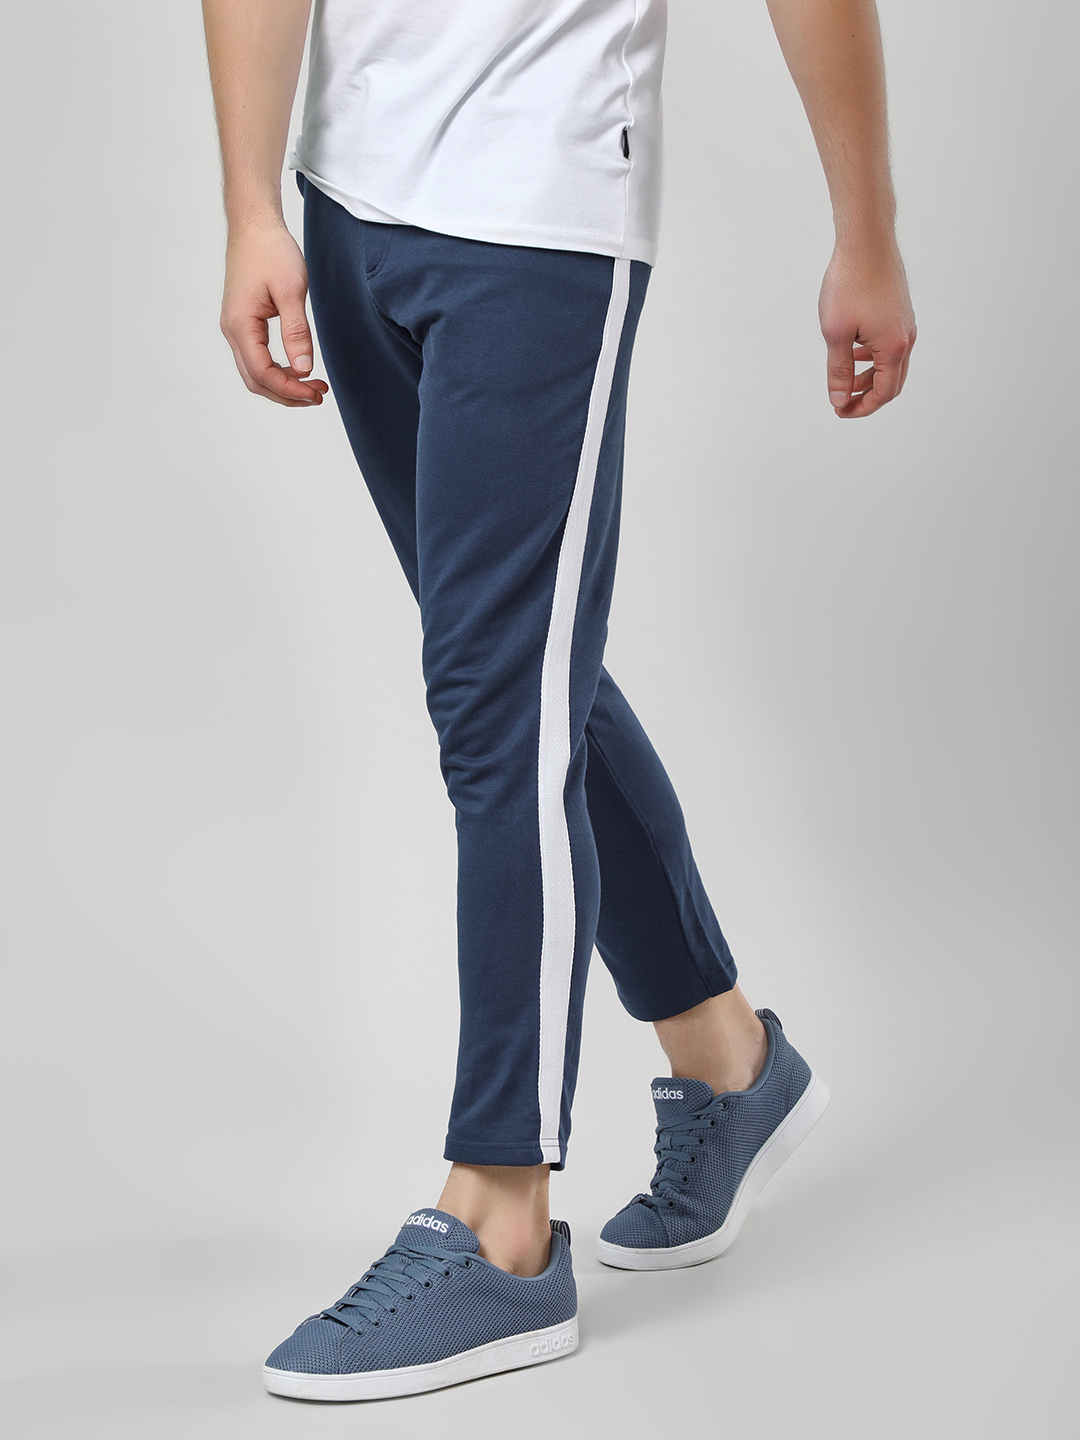 Garcon Navy Contrast Side Tape Knitted Trousers 1